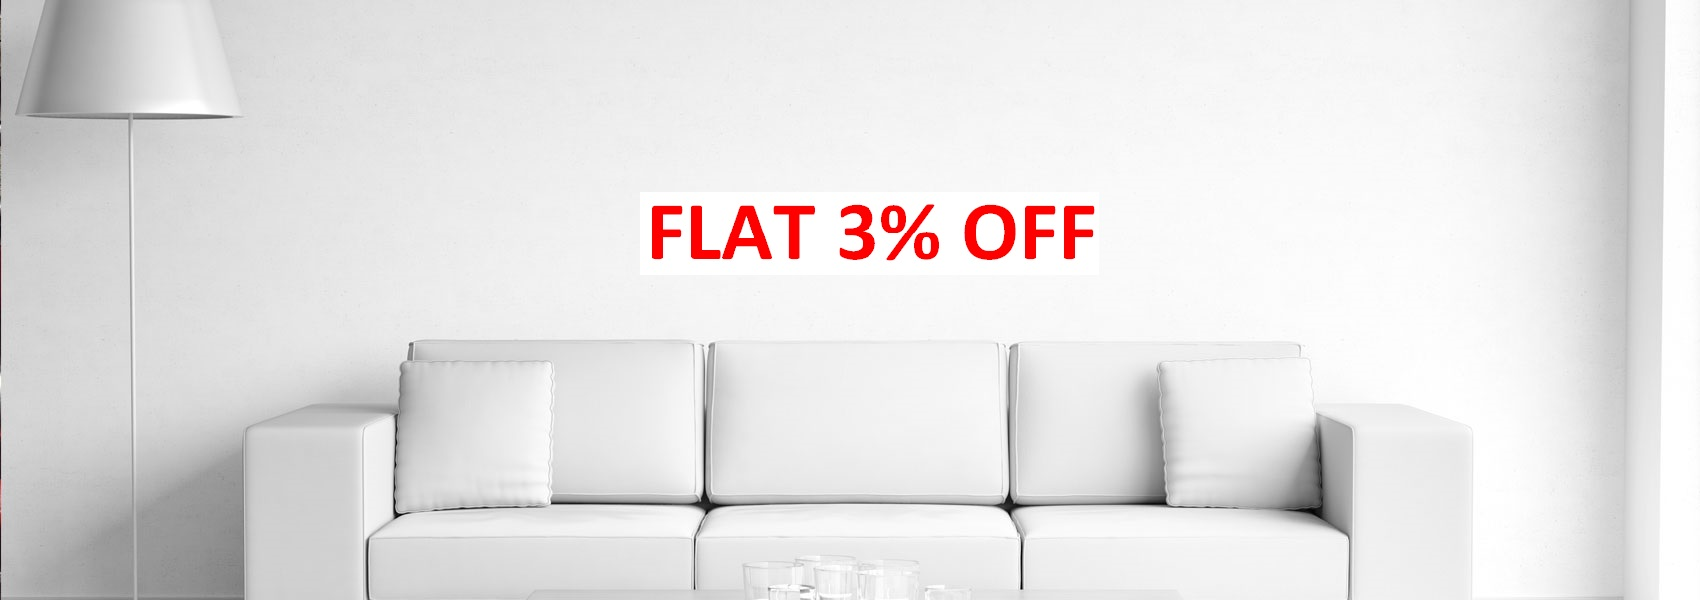 Flat 3% off inoday.in